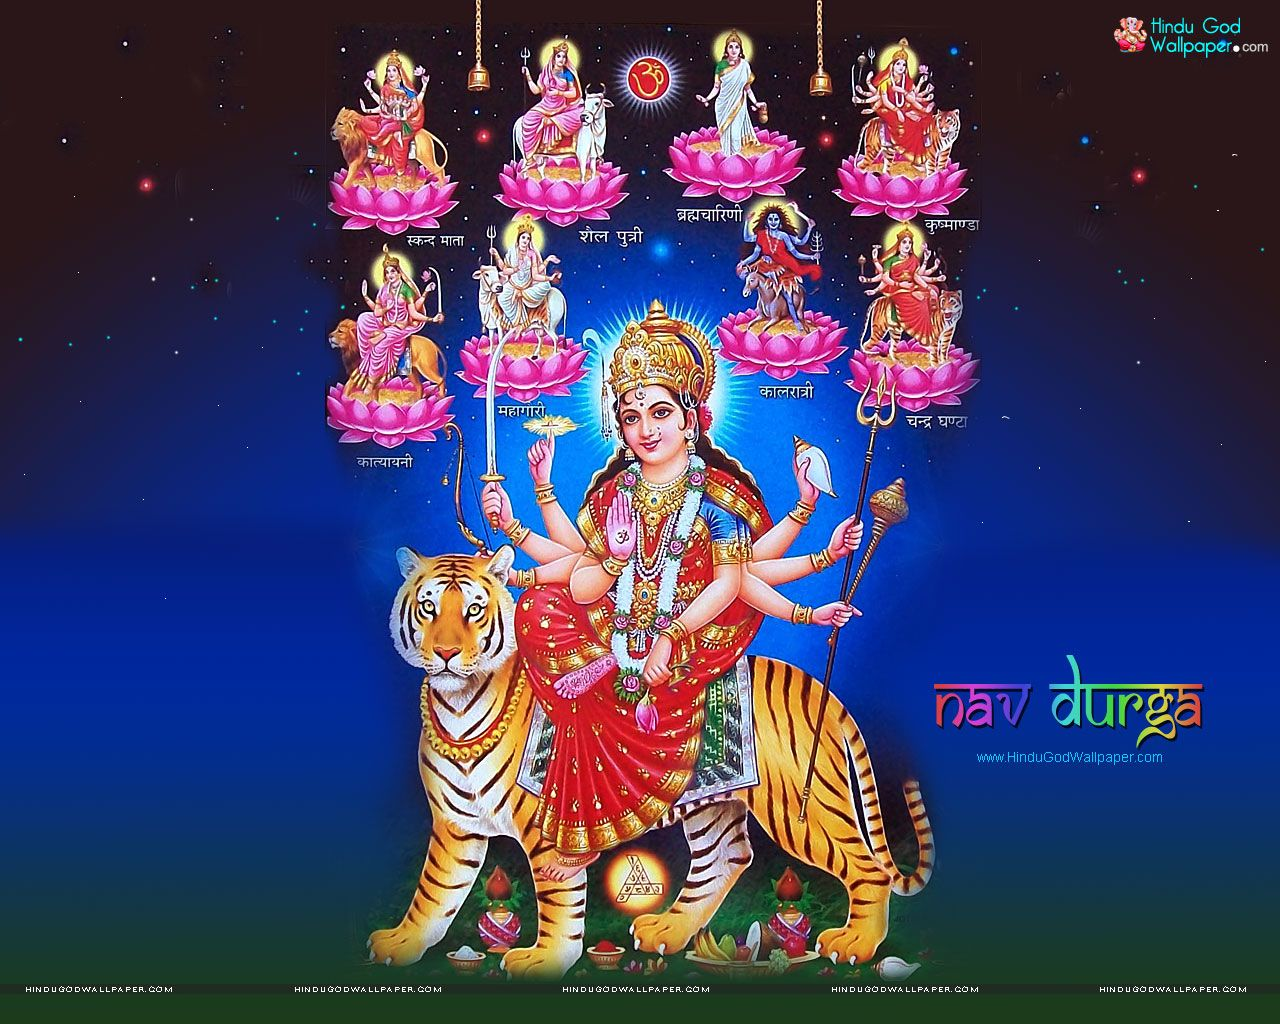 Wallpaper download mata rani - Nav Durga Wallpaper Free Download